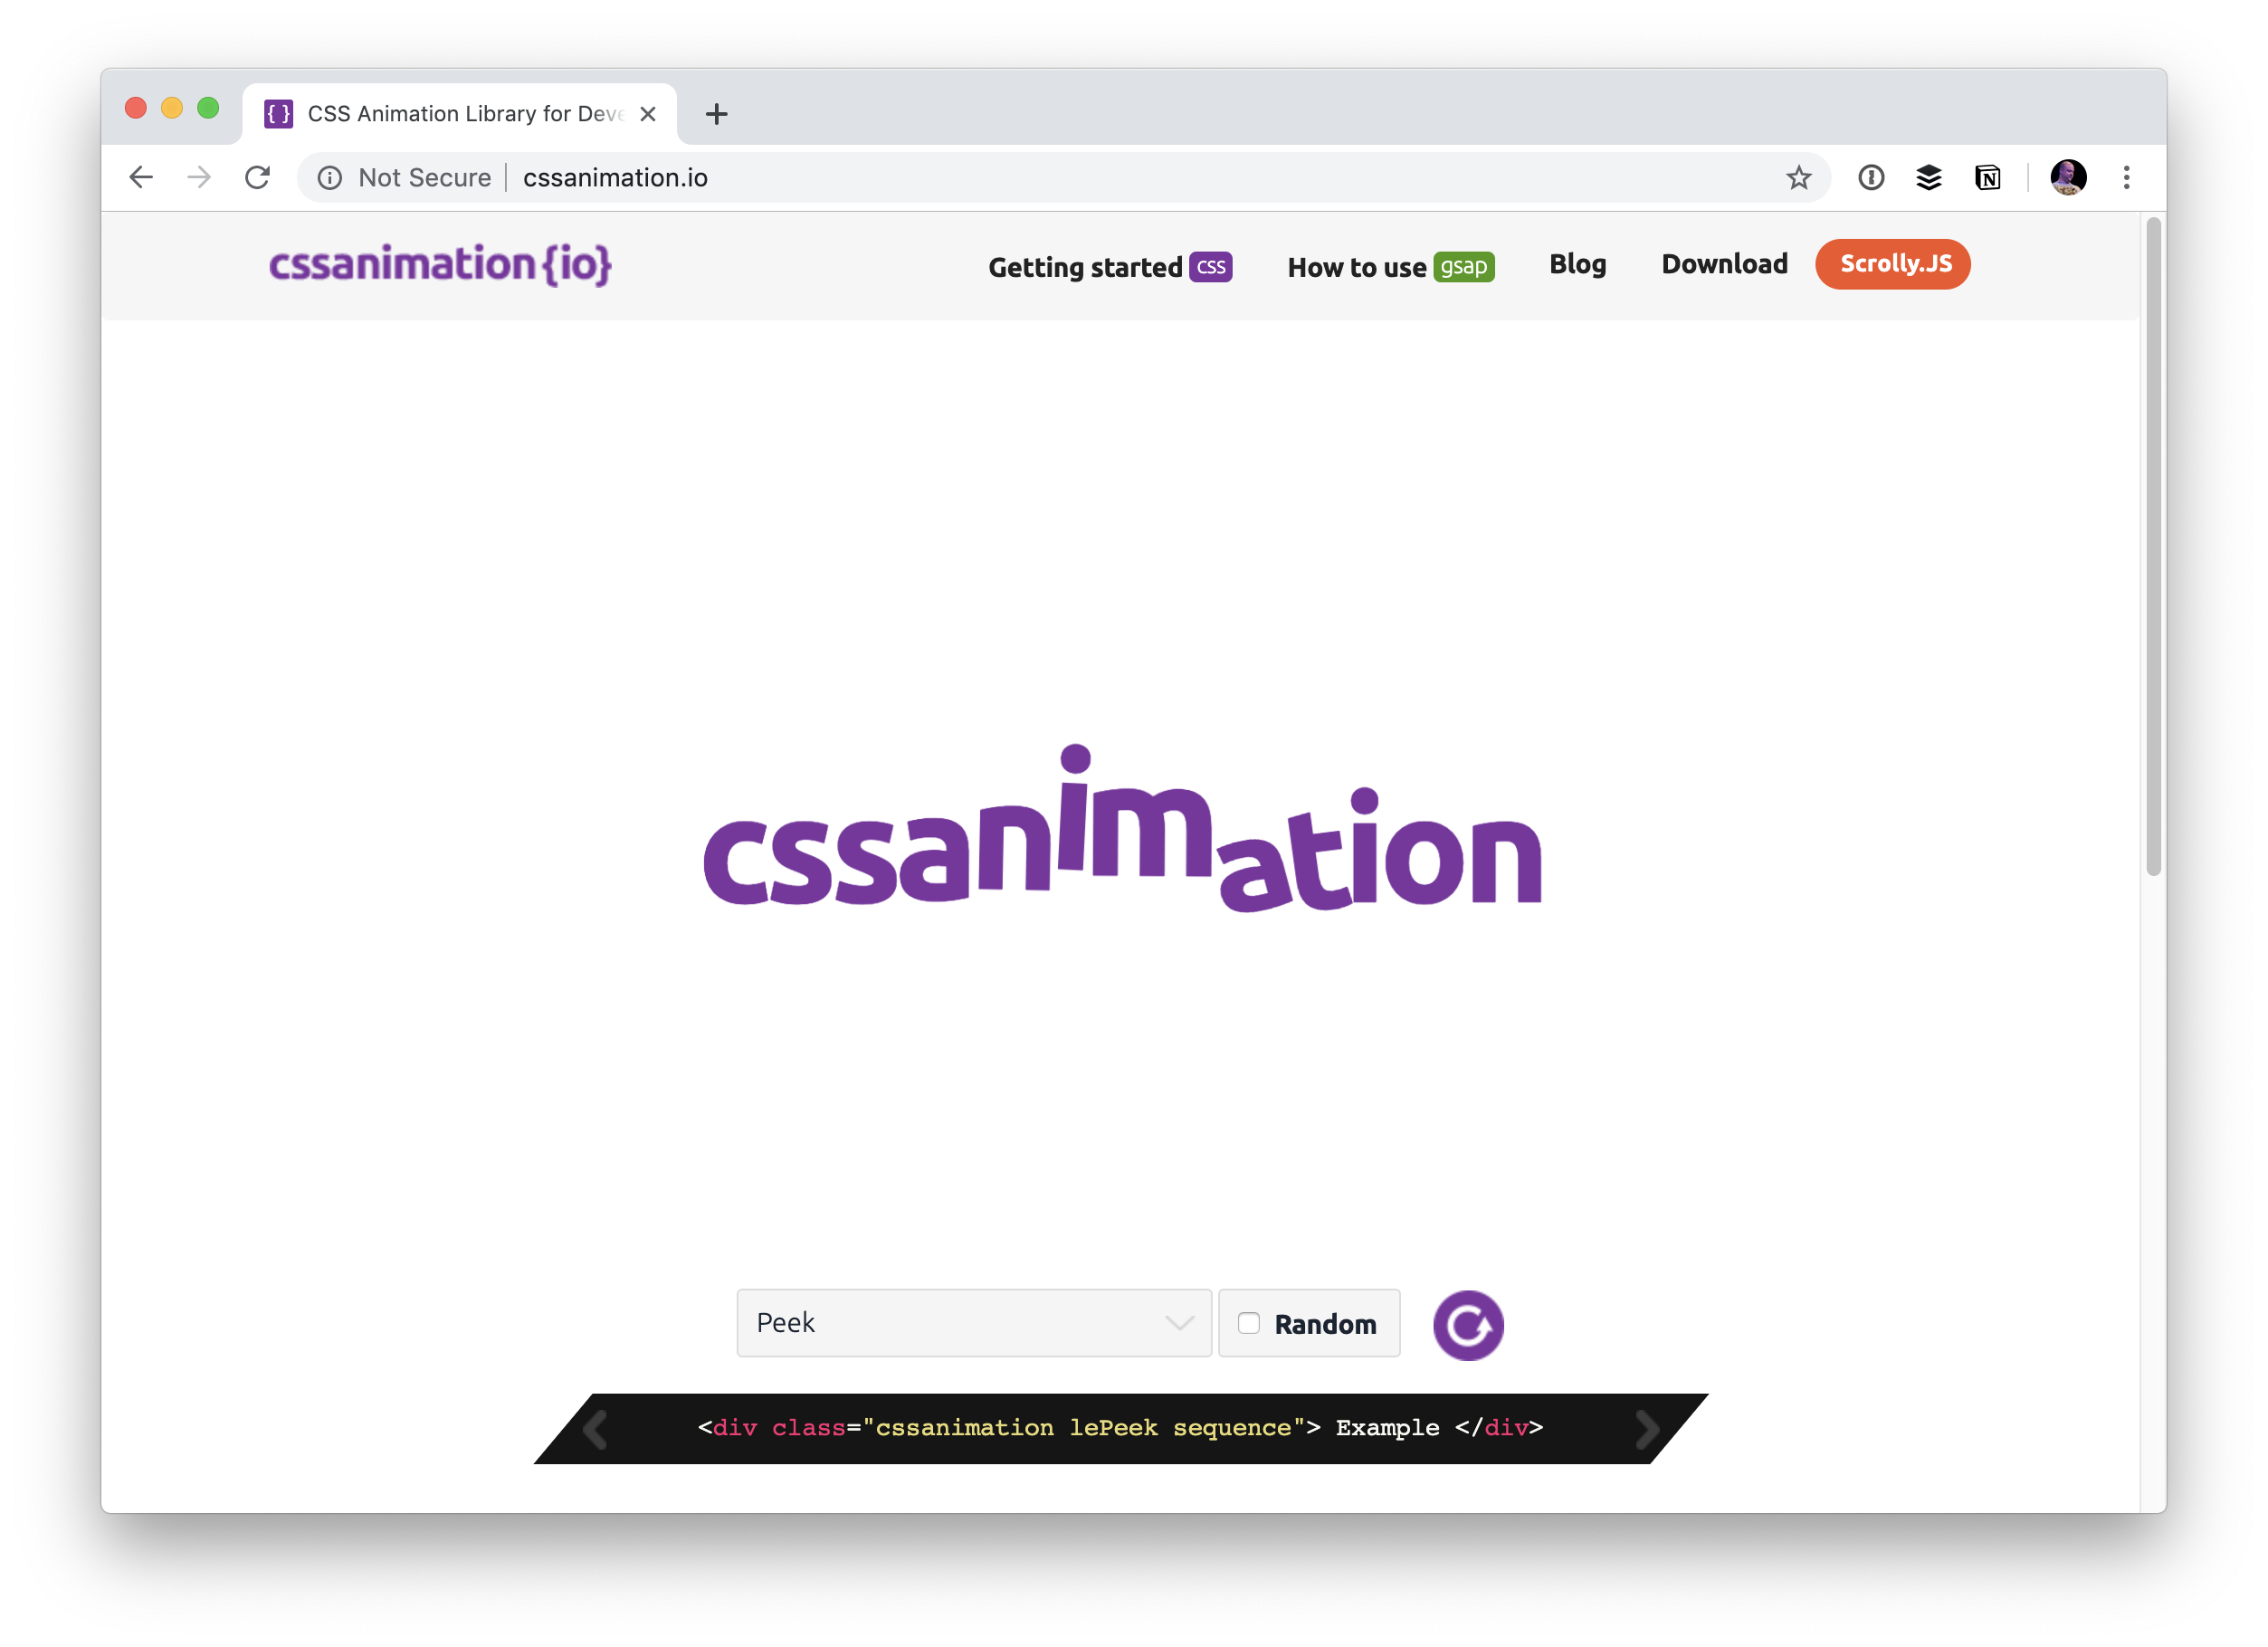 CSS Animation Libraries - Web Design Tips